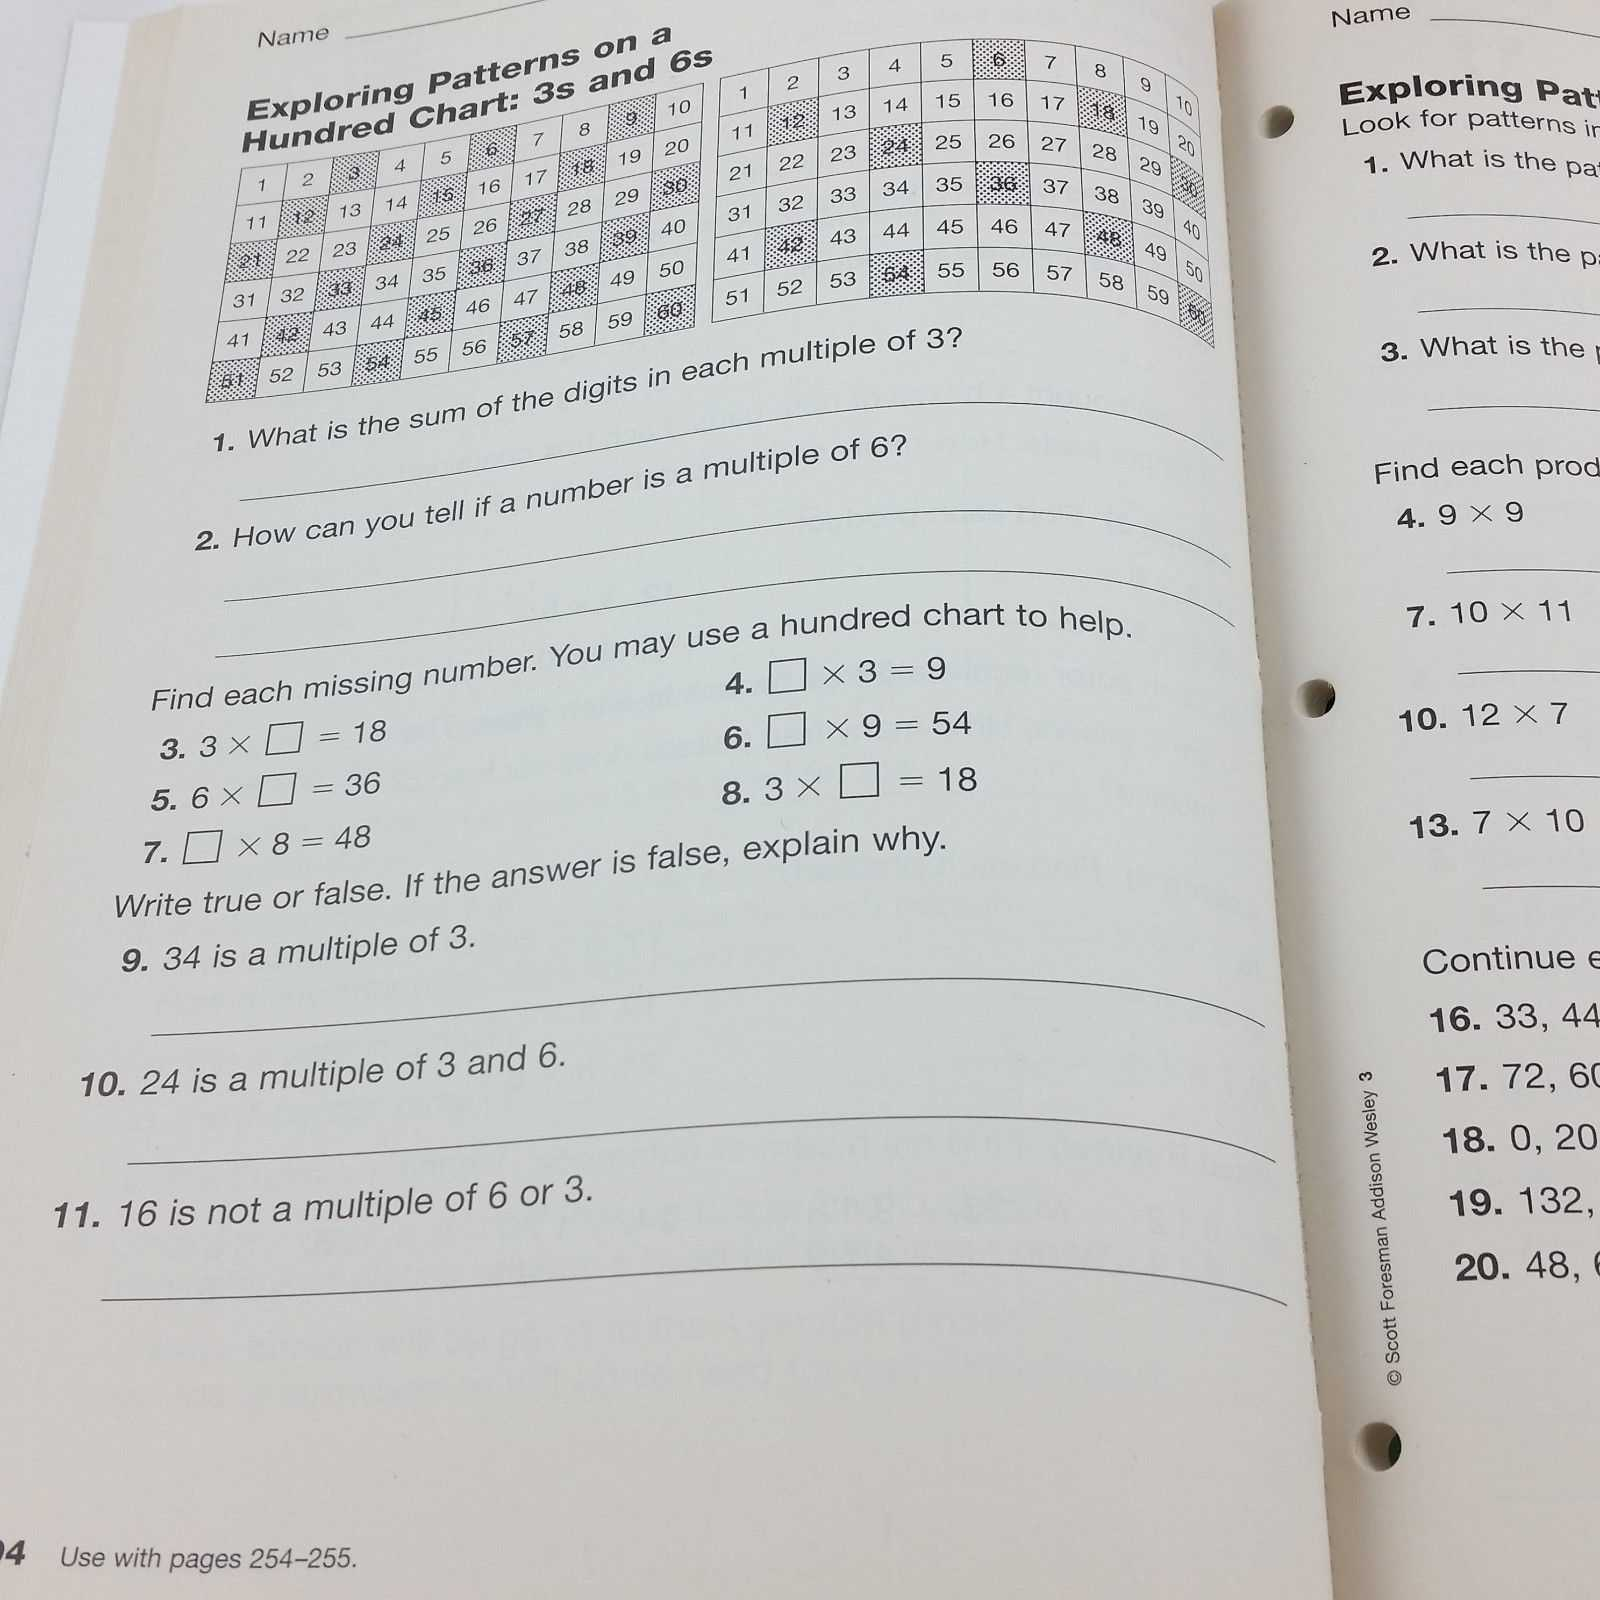 Trigonometry Practice Worksheets or Famous Fractions Worksheet Preview English Worksheets Ks2 Reading